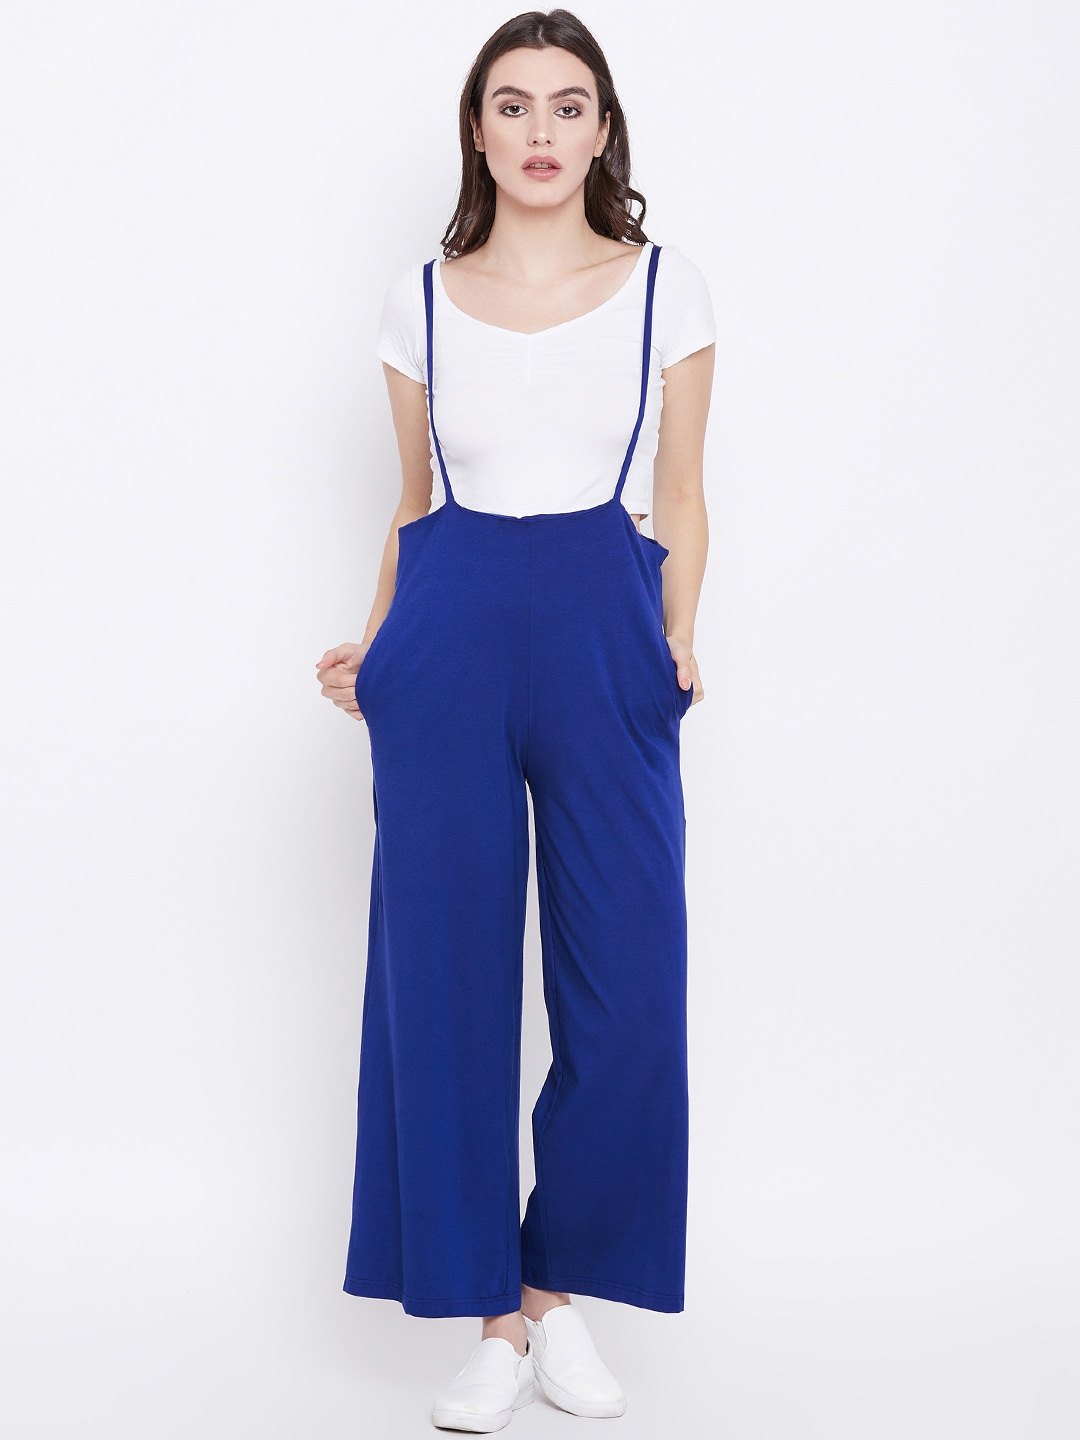 ebb7d6f7c4 Dungarees - Buy Dungarees Dress for Women Online - Myntra